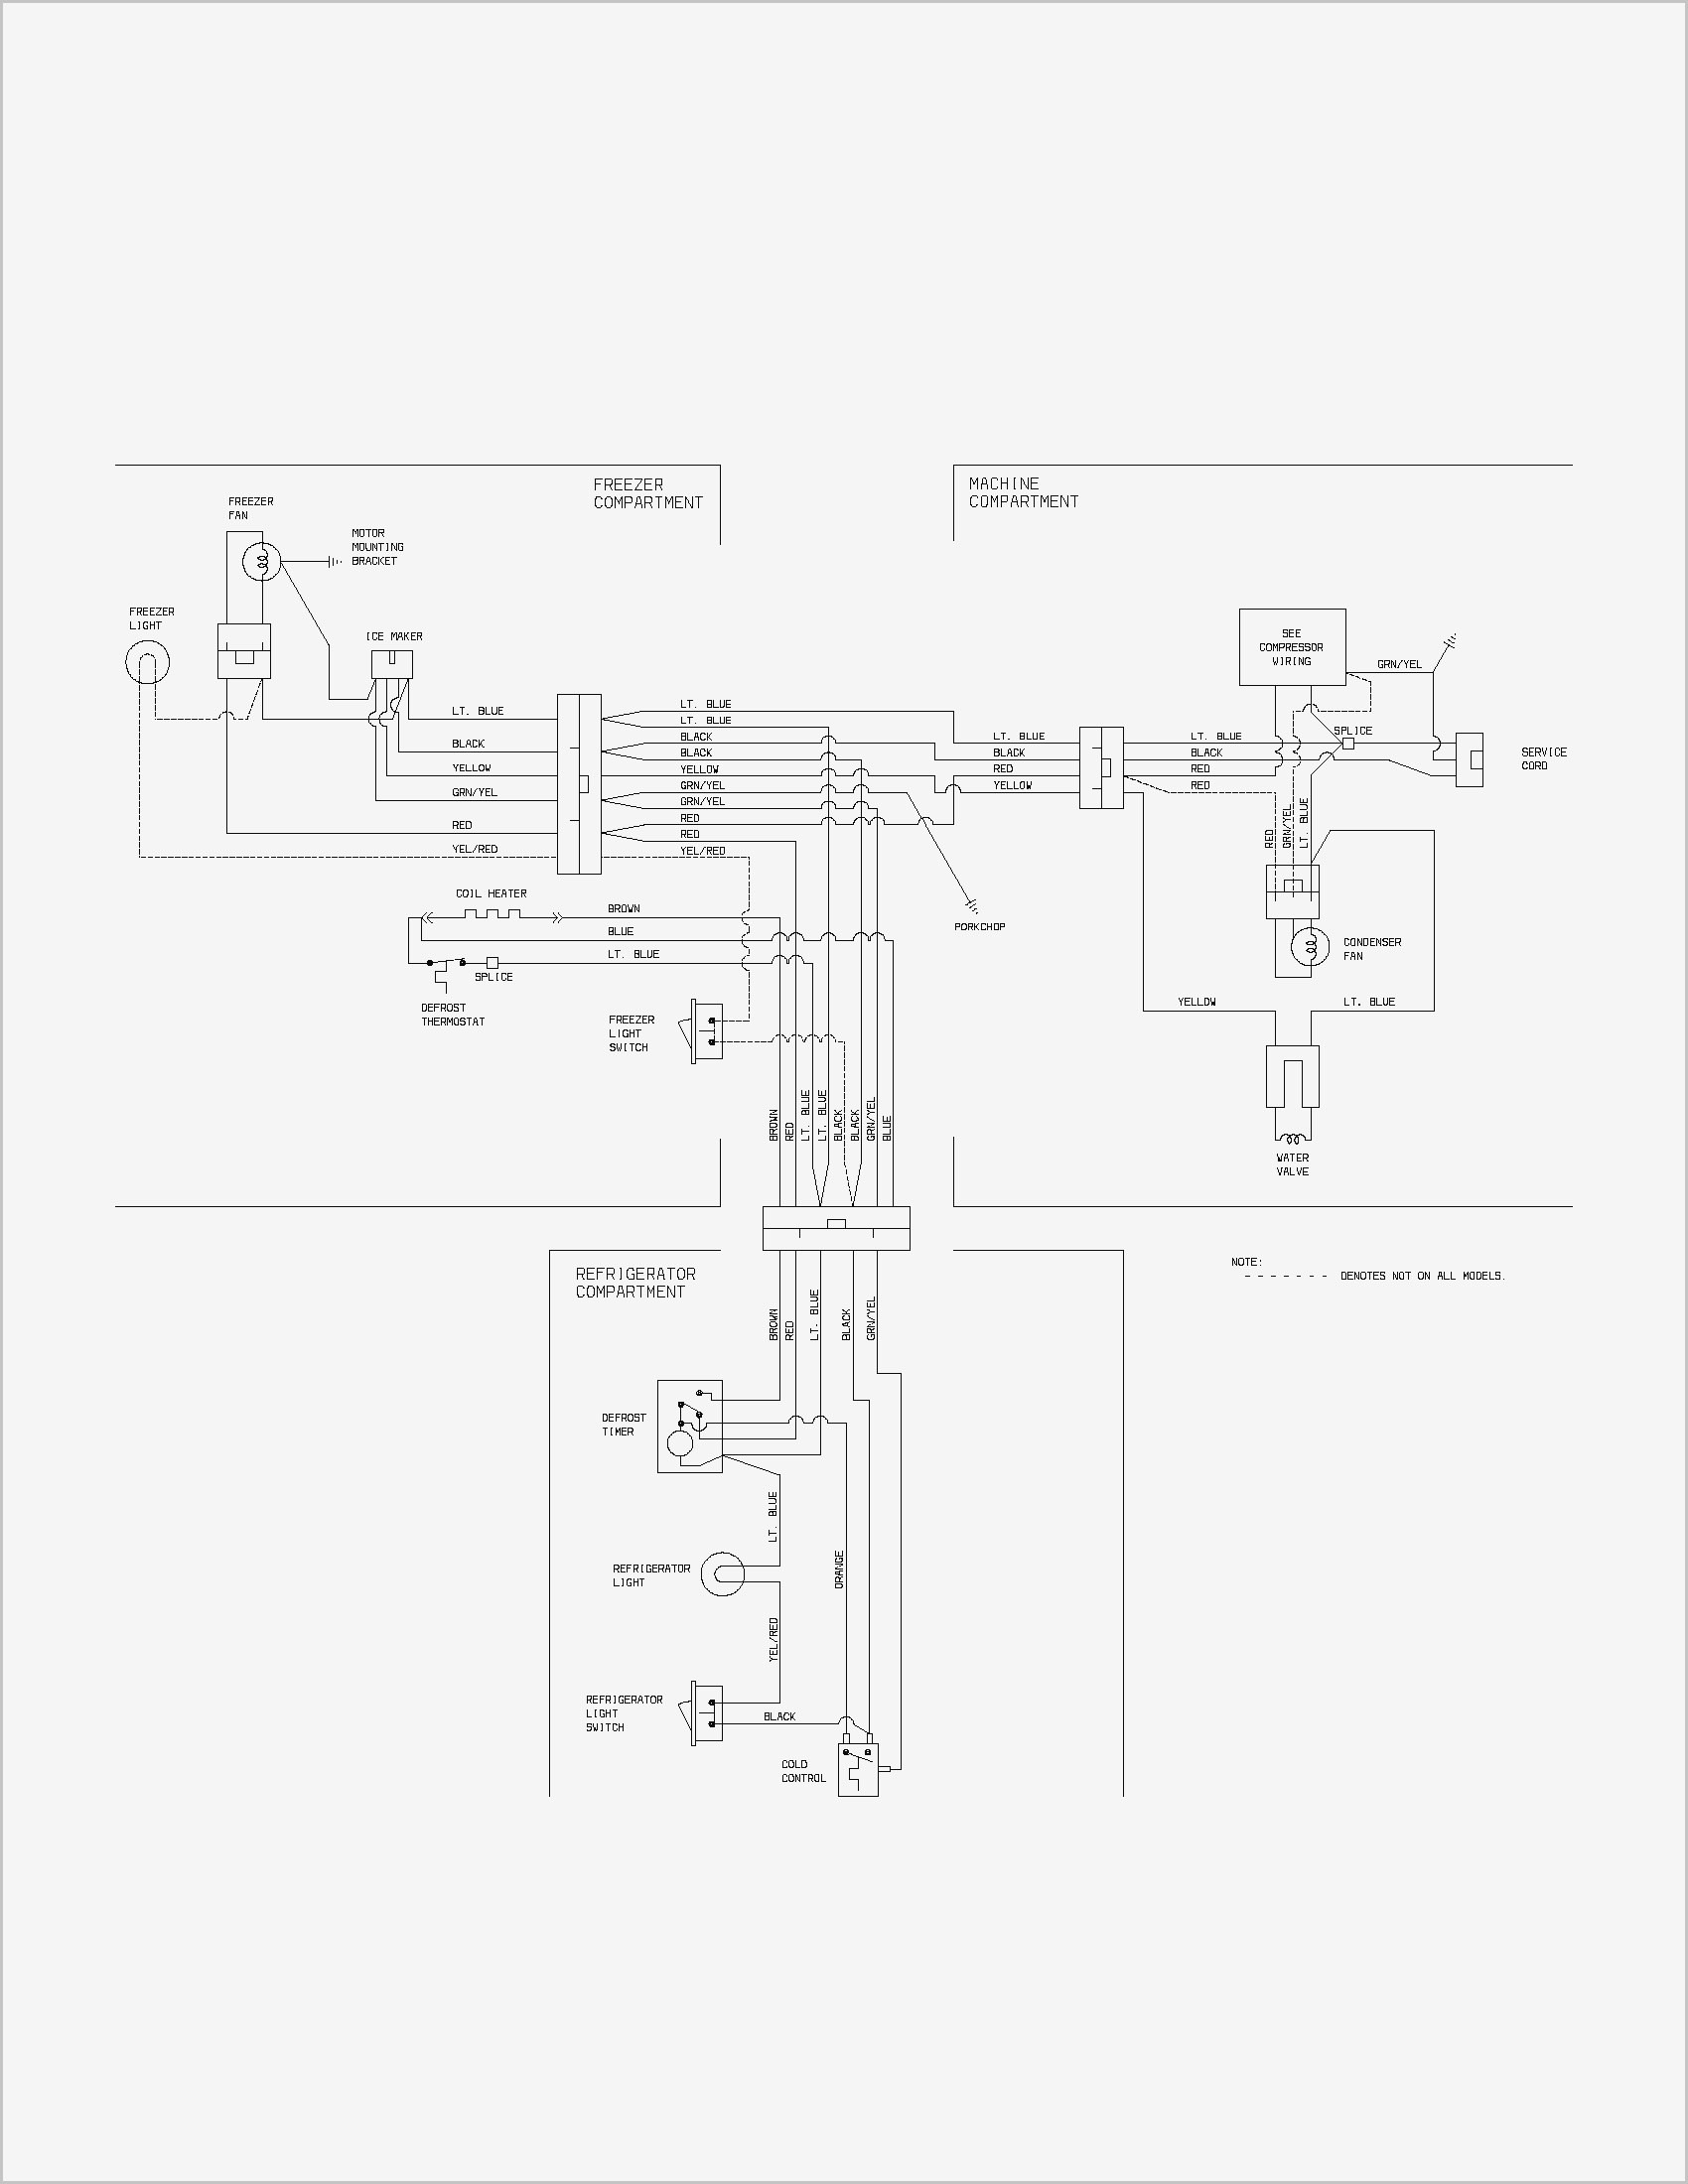 Wiring Photocell to Lighting Contactor 480v Cell Wiring Diagram Of Wiring Photocell to Lighting Contactor